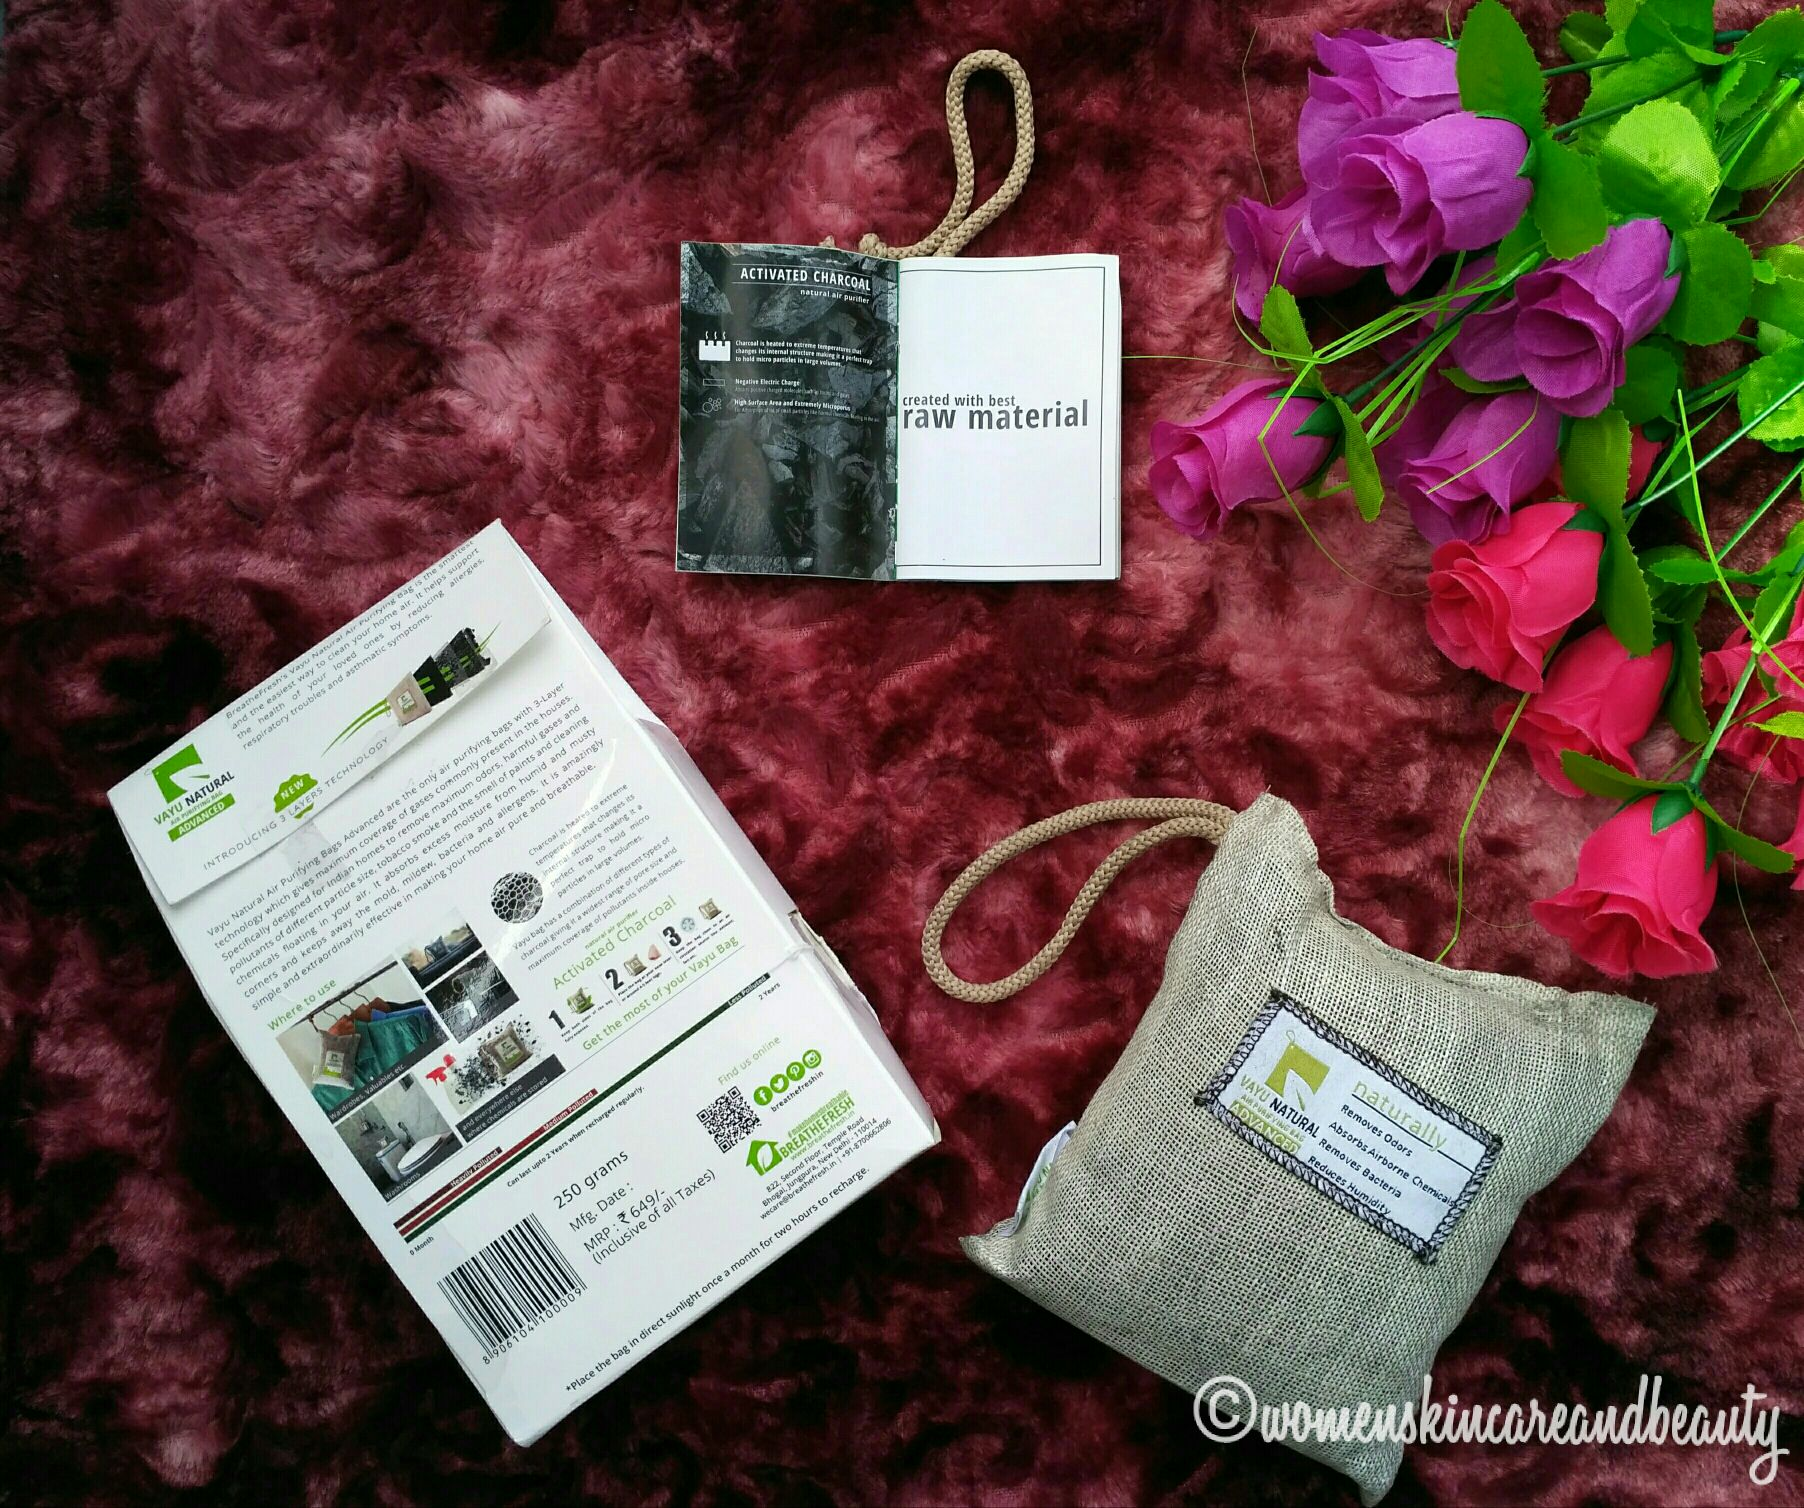 Fighting Indoor Air Pollution With Vayu Natural Air Purifying Bag!